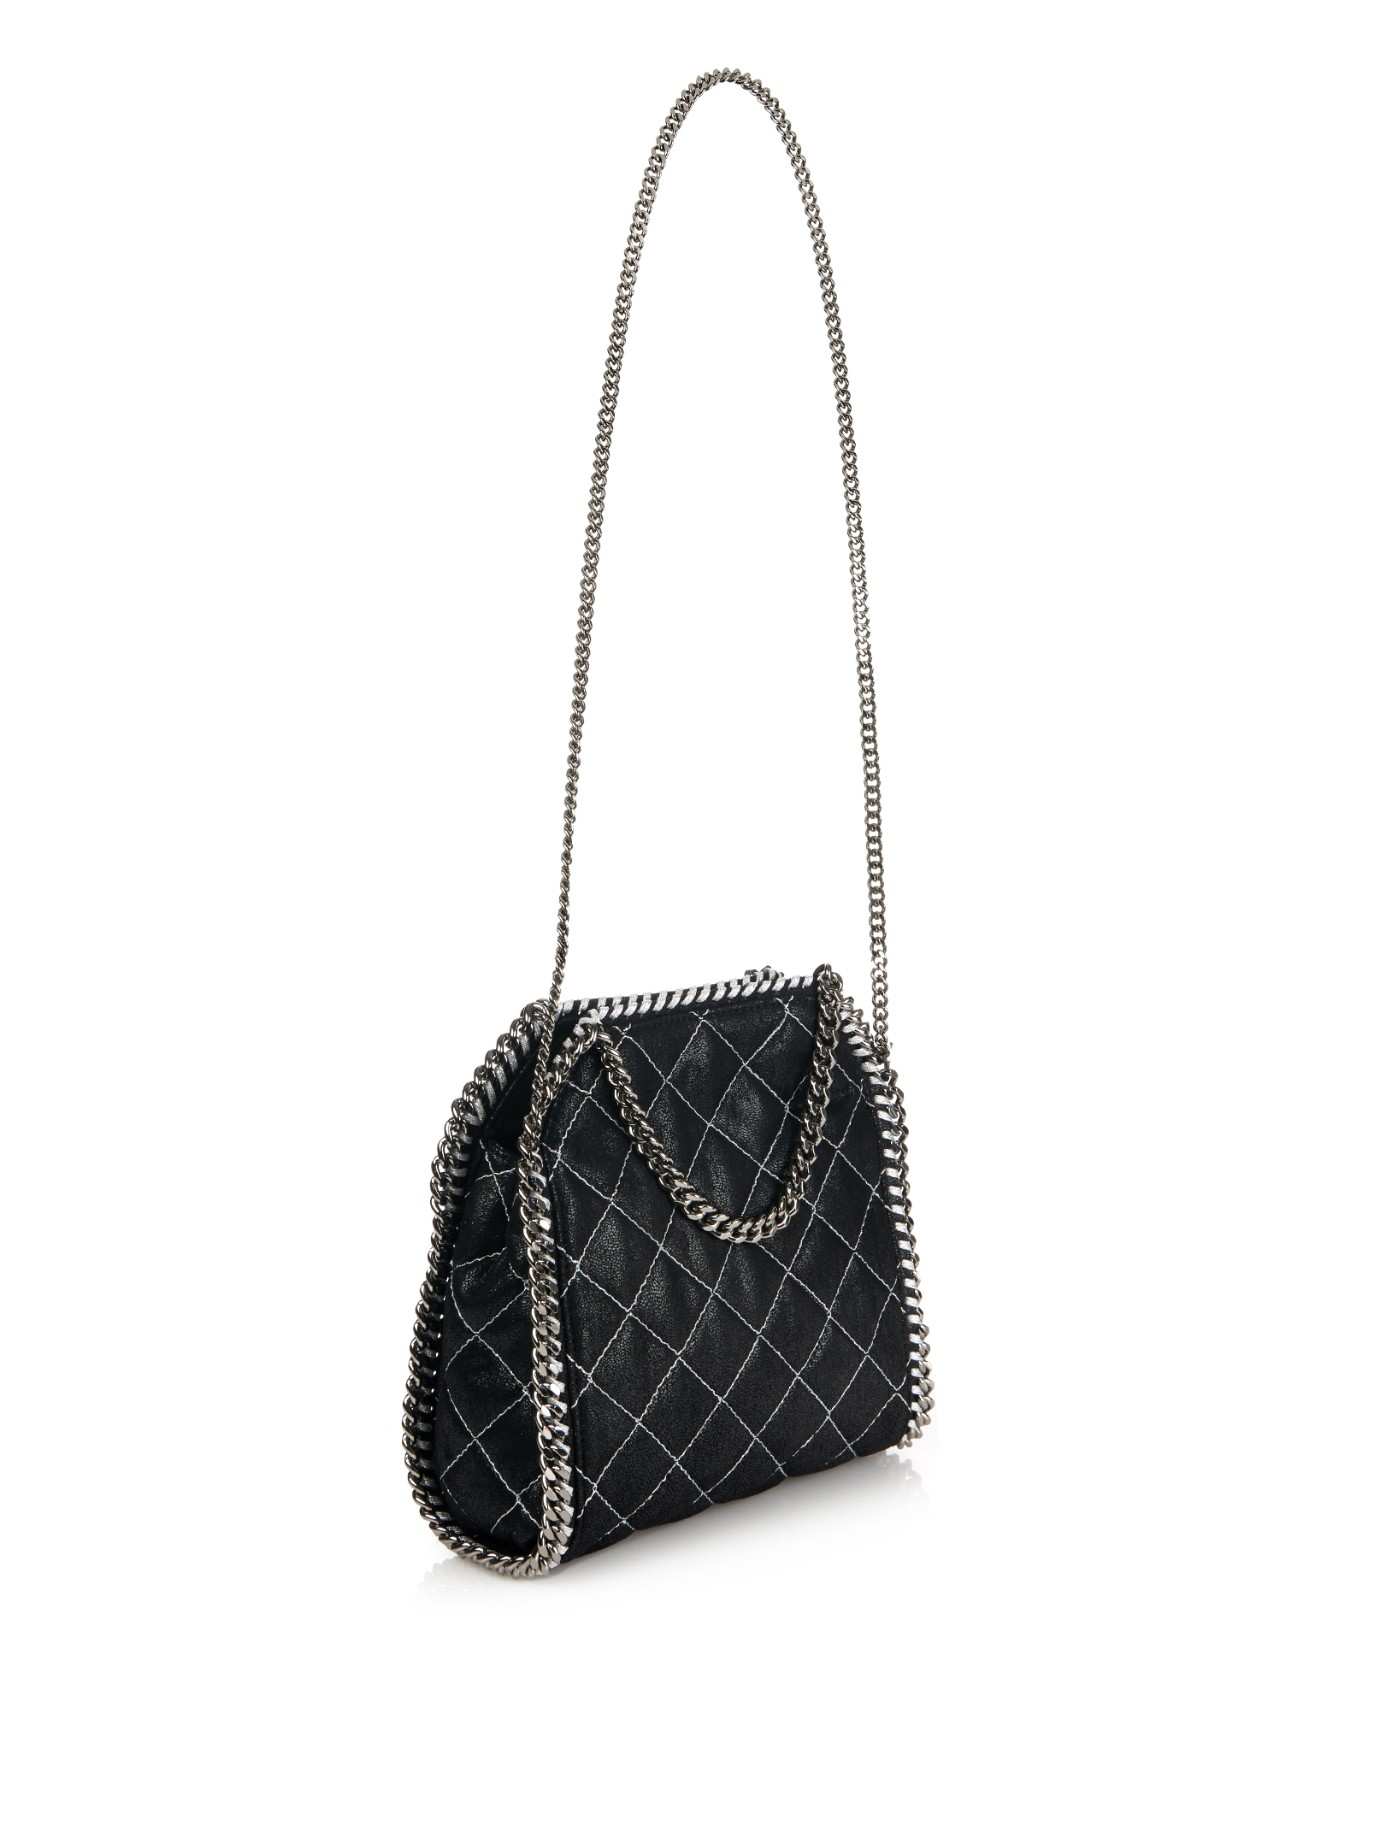 Lyst - Stella McCartney Falabella Small Quilted Cross-Body Bag in Black fcf2063fedaca